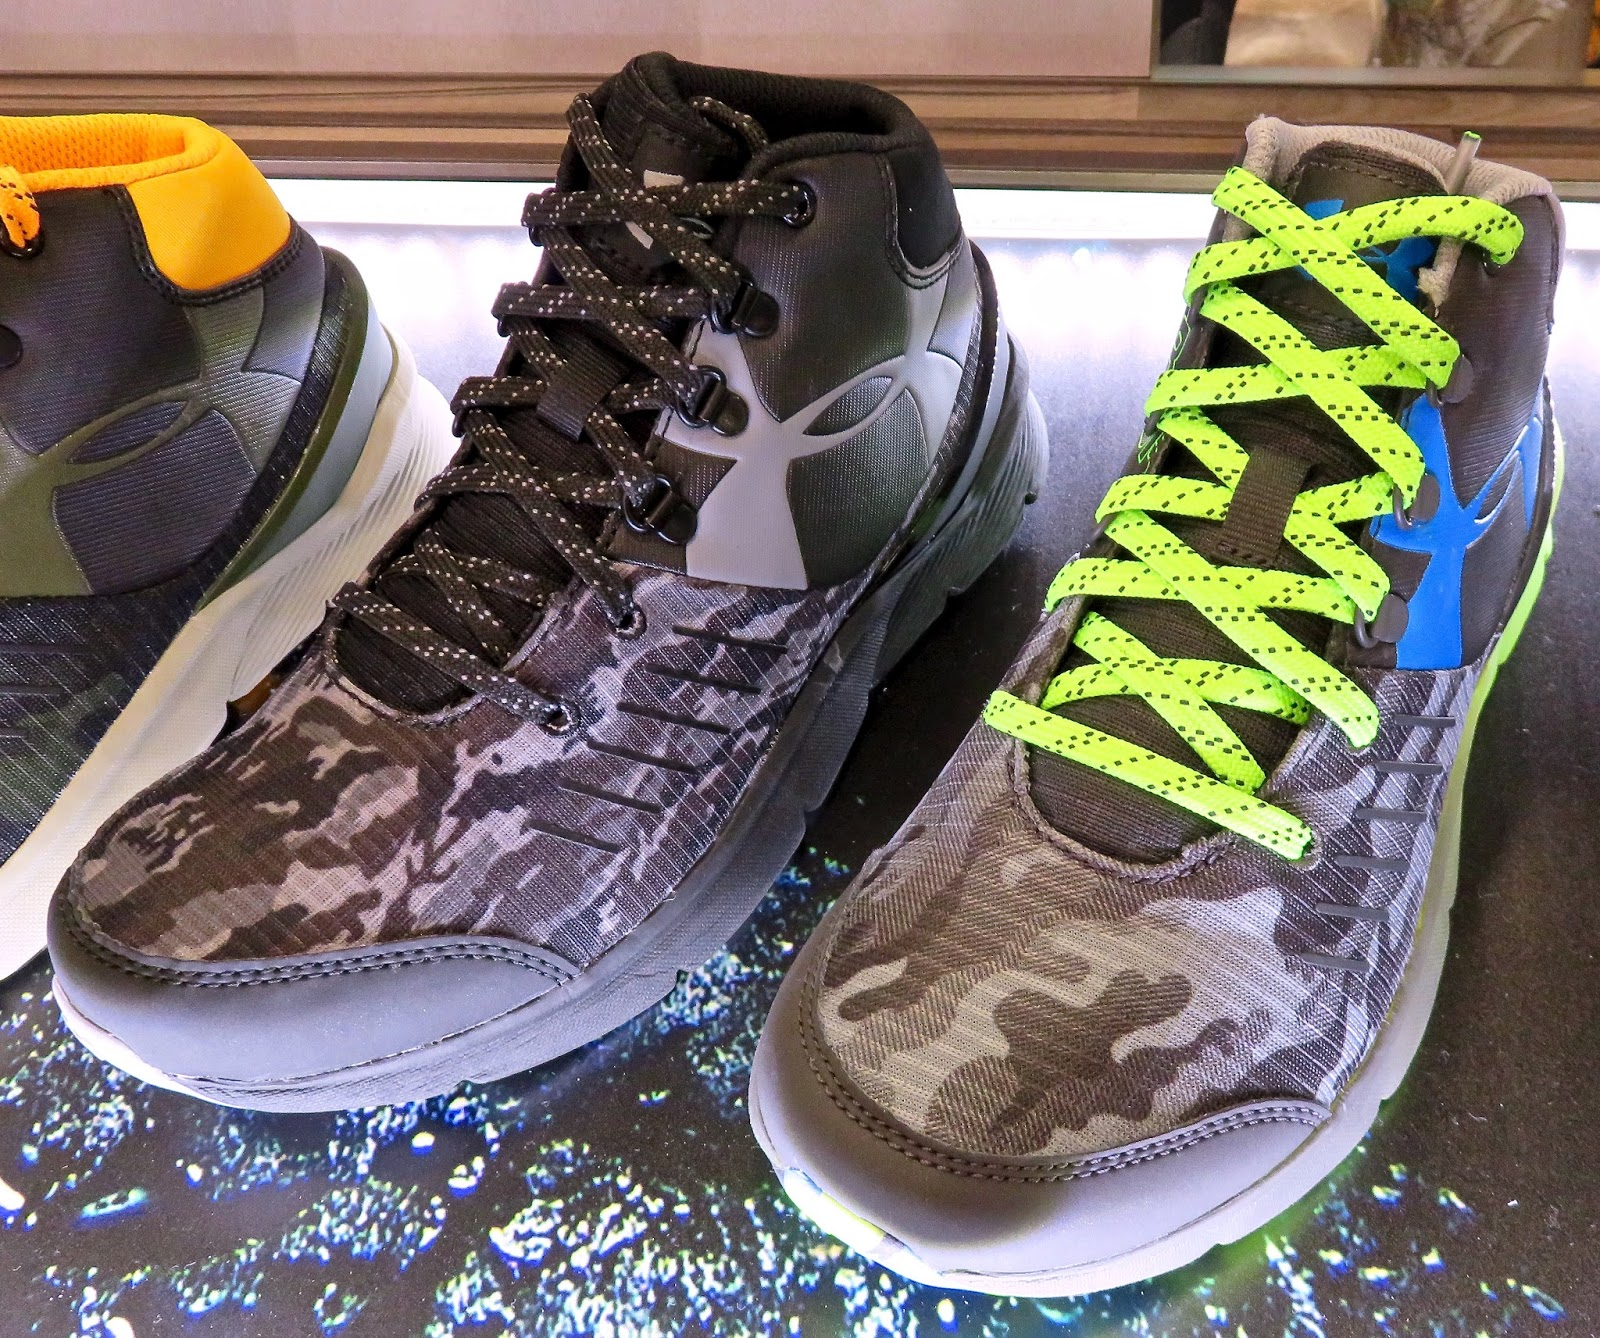 UNDER ARMOUR OUTDOORS' DEBUTS Footwear/Apparel Highlights Spring 2016